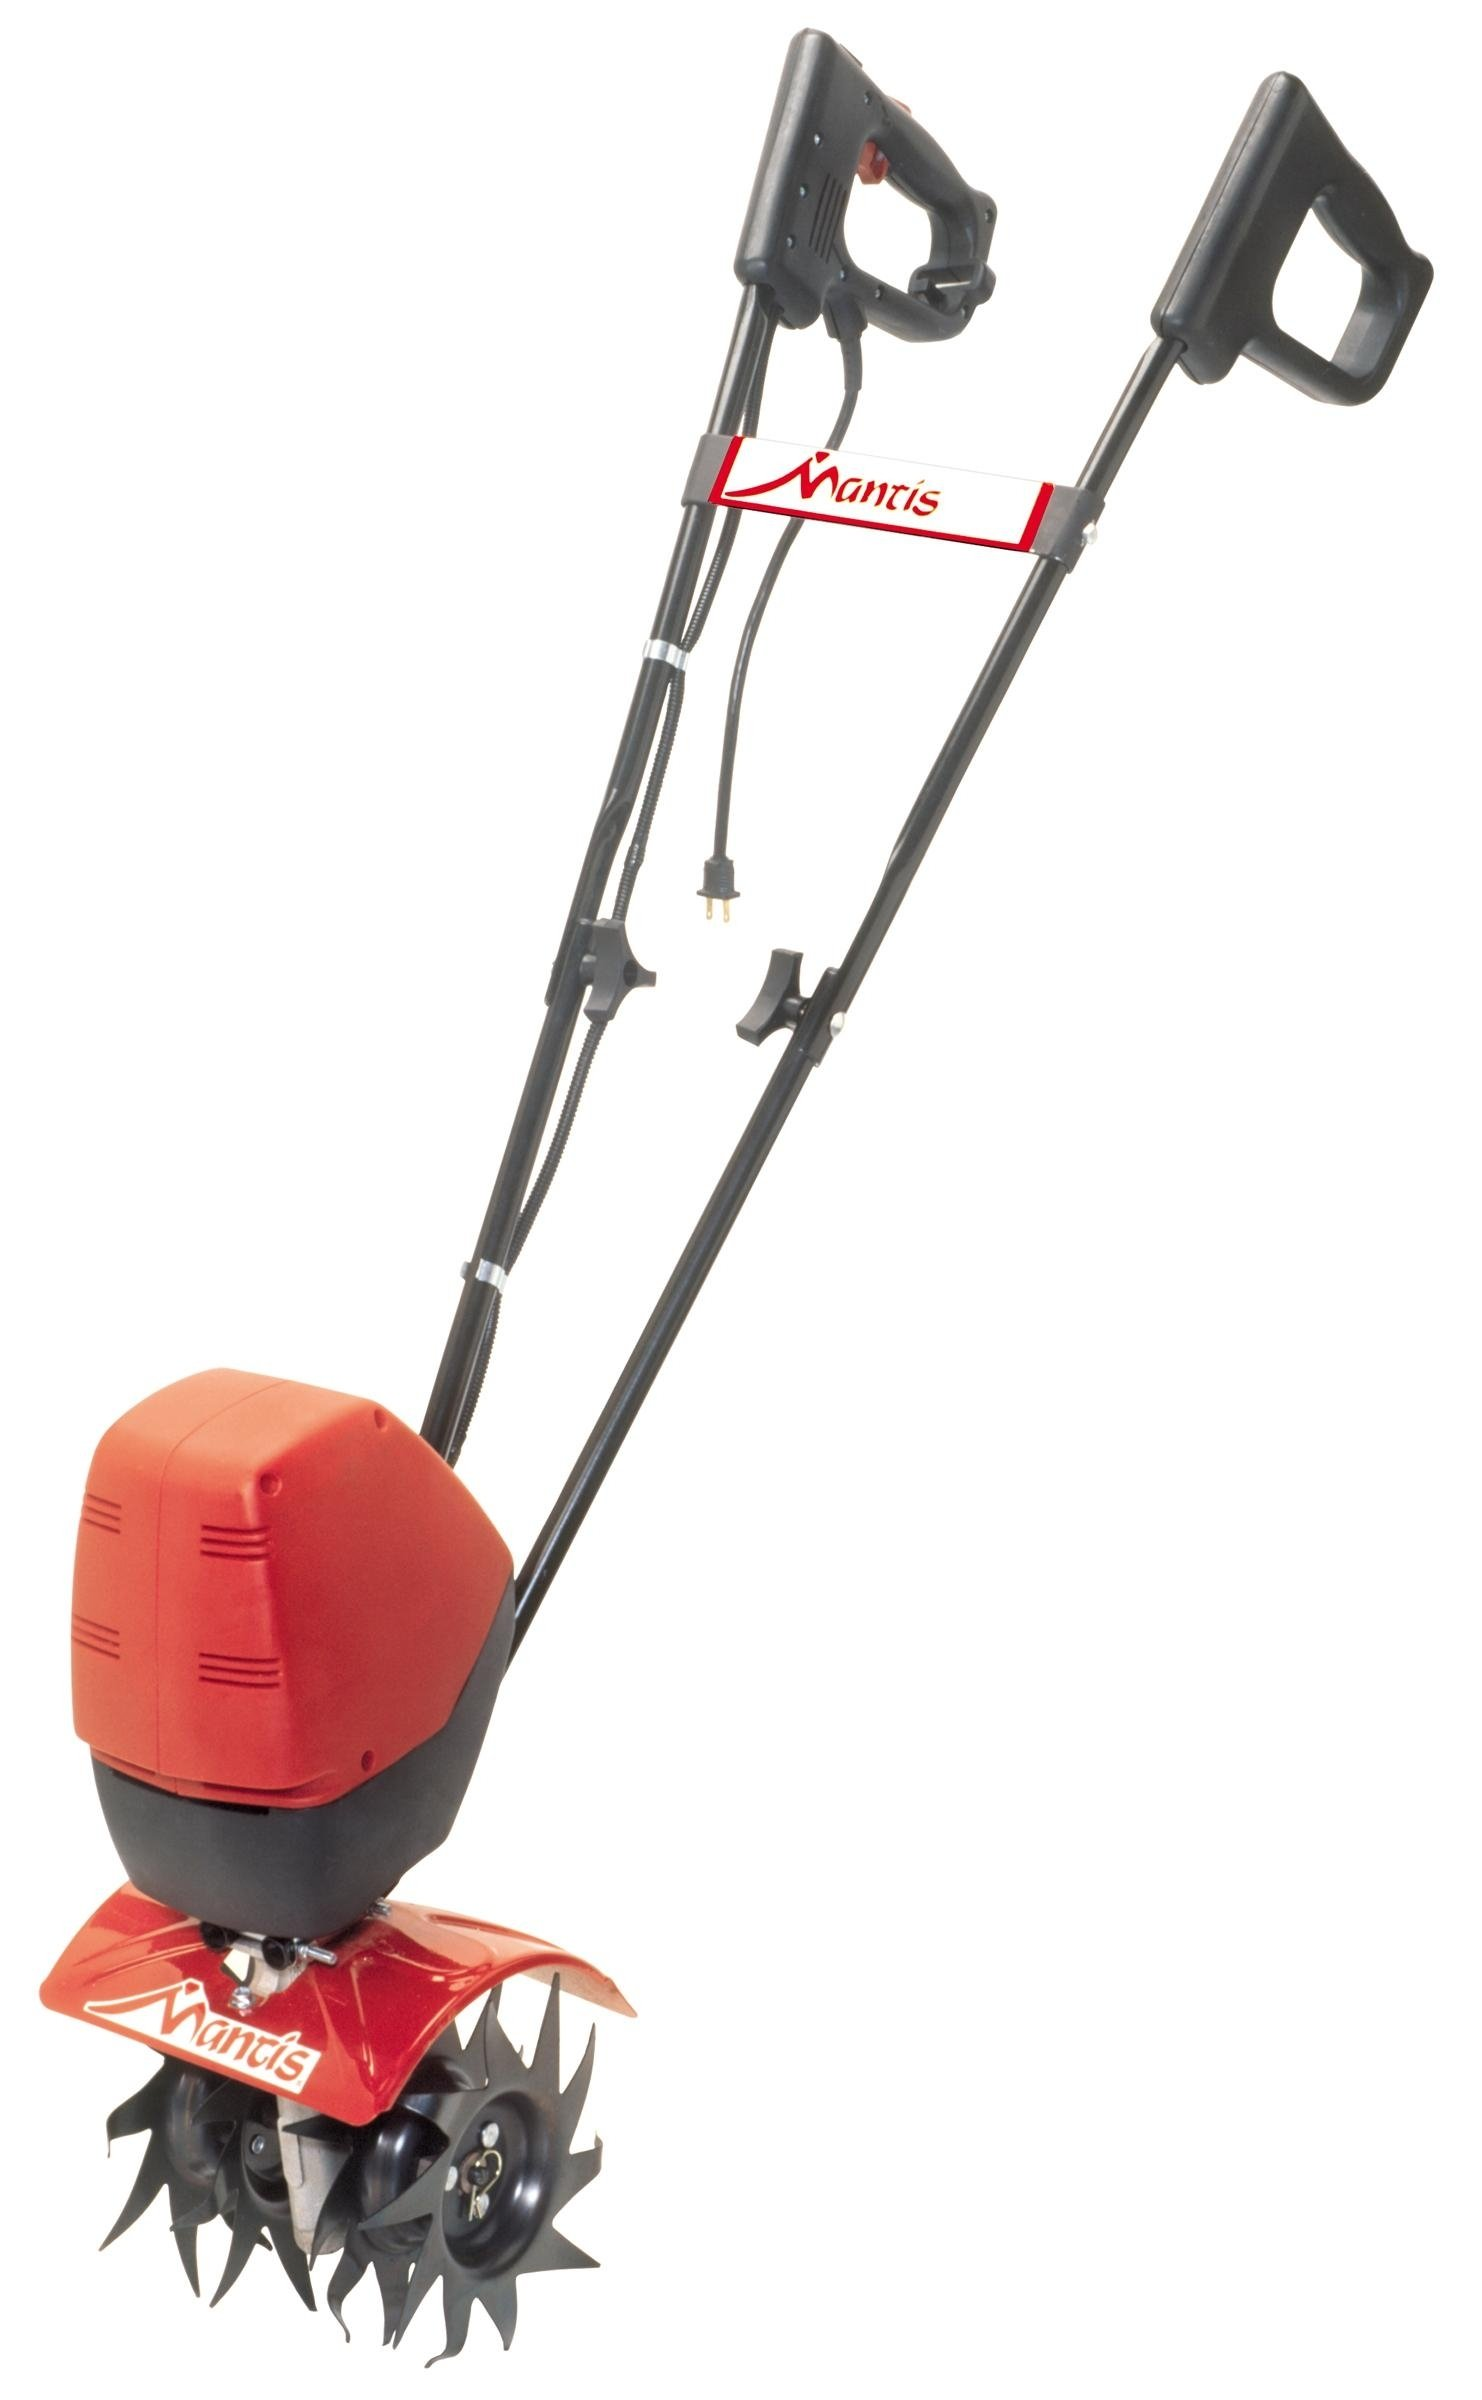 Mantis Corded Electric Tiller Cultivator 7250 with Touch-Start – Push-Button Instant Start, Powerful, Compact and Lightweight, Quiet, Easy-to-Use, No-Emissions – Built to be Durable and Dependable